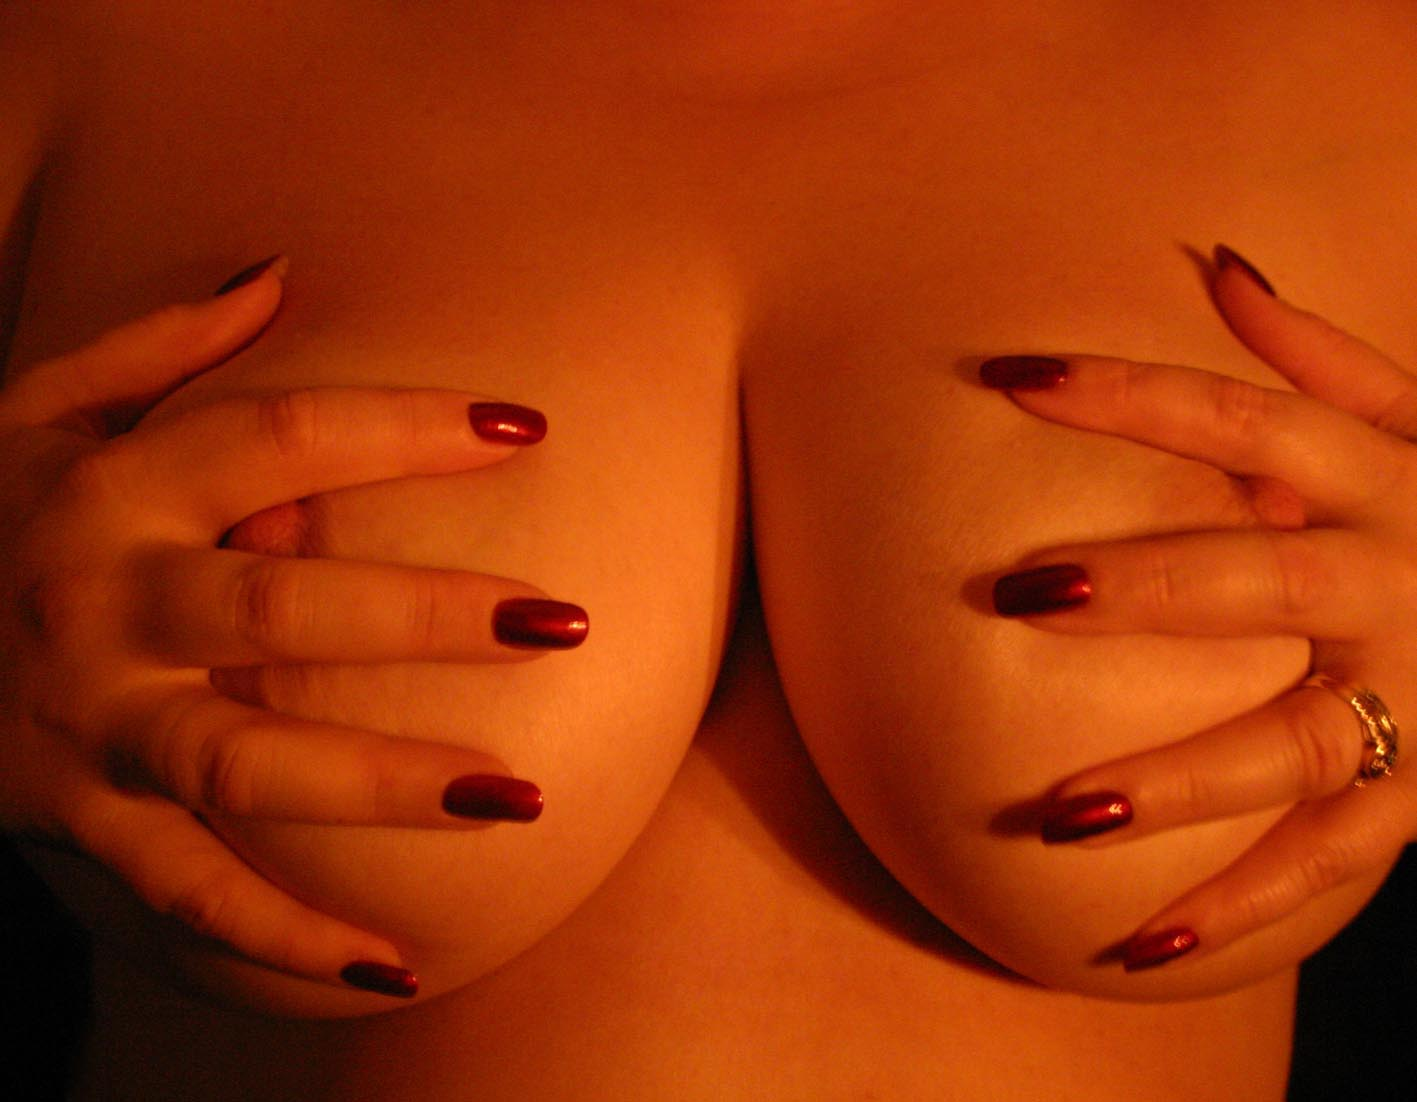 tits boobs experiment